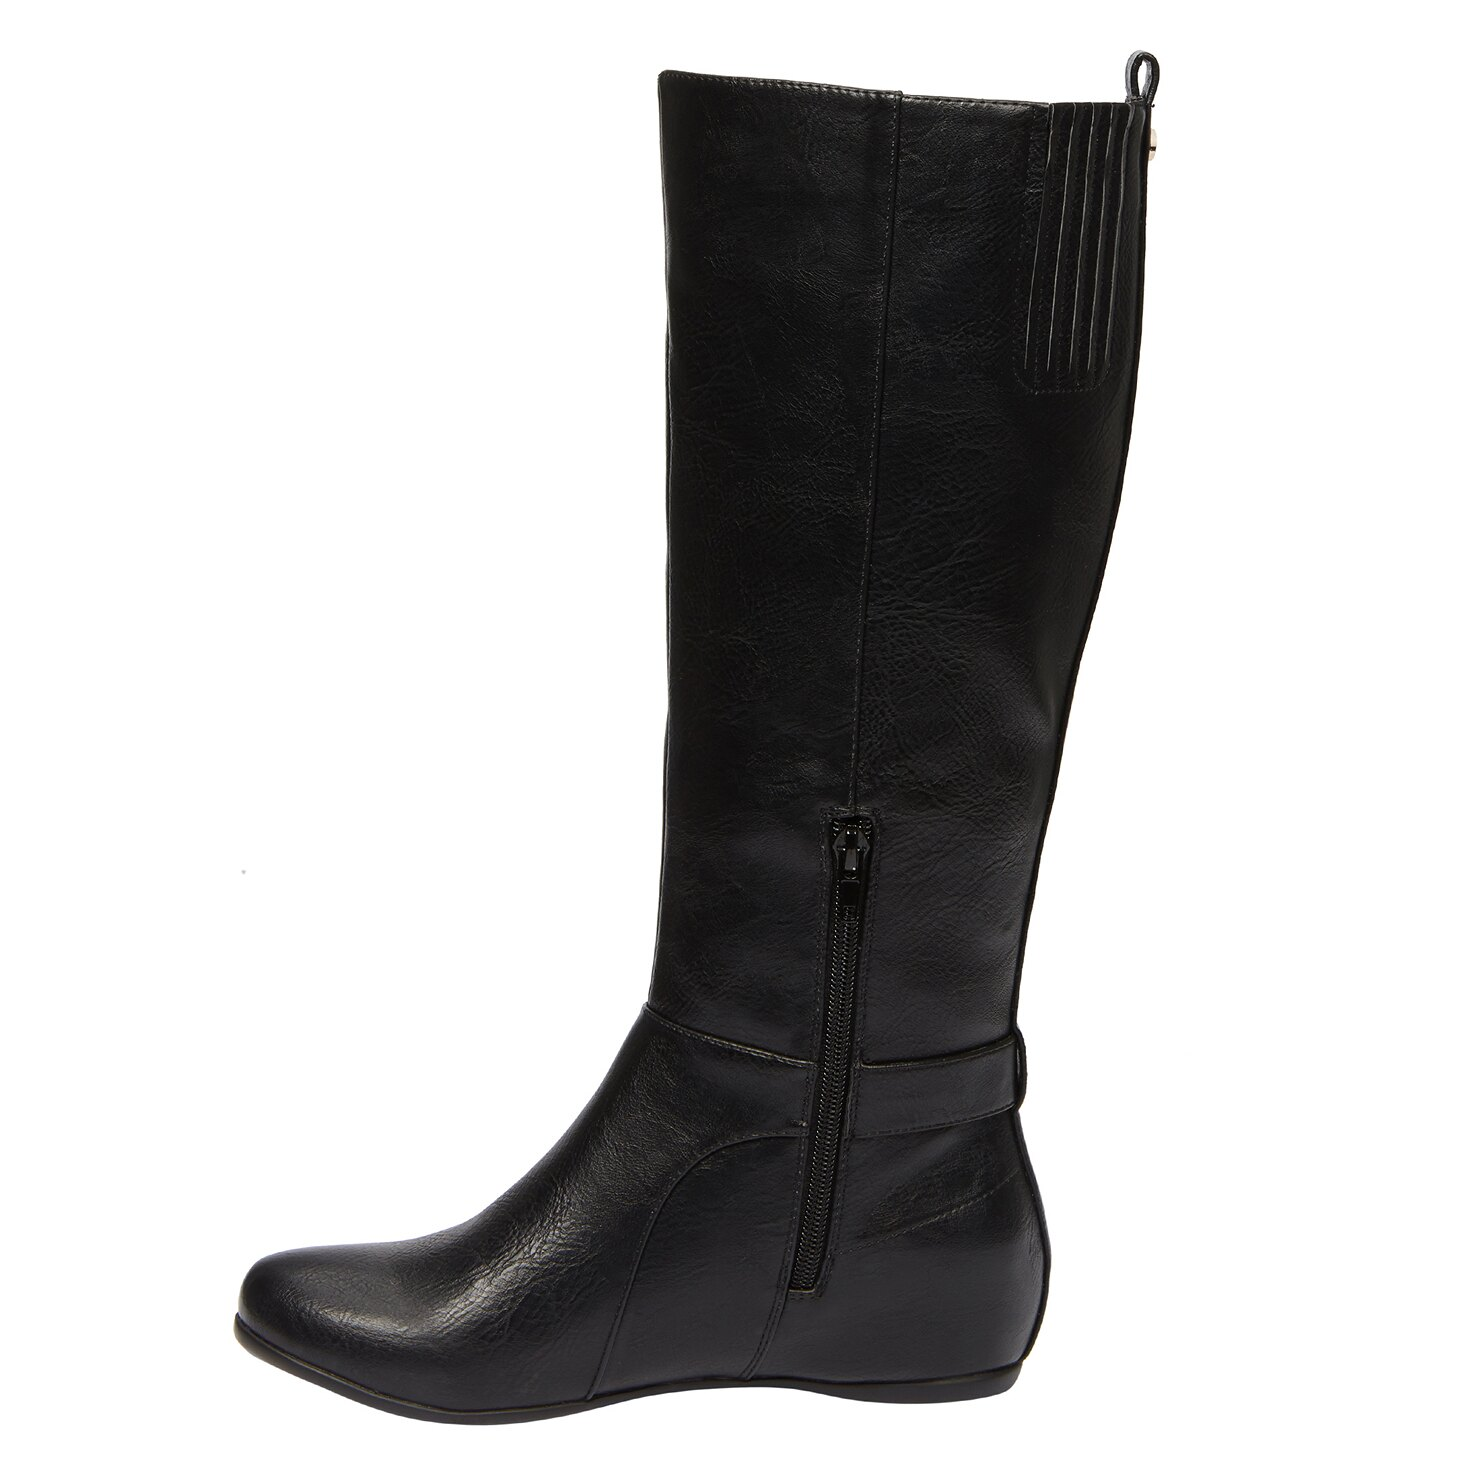 low price pay with paypal sale online Call It Spring Call It Spring Kirschenbaum Boots Black free shipping 2014 unisex buy cheap pick a best n5phtTy